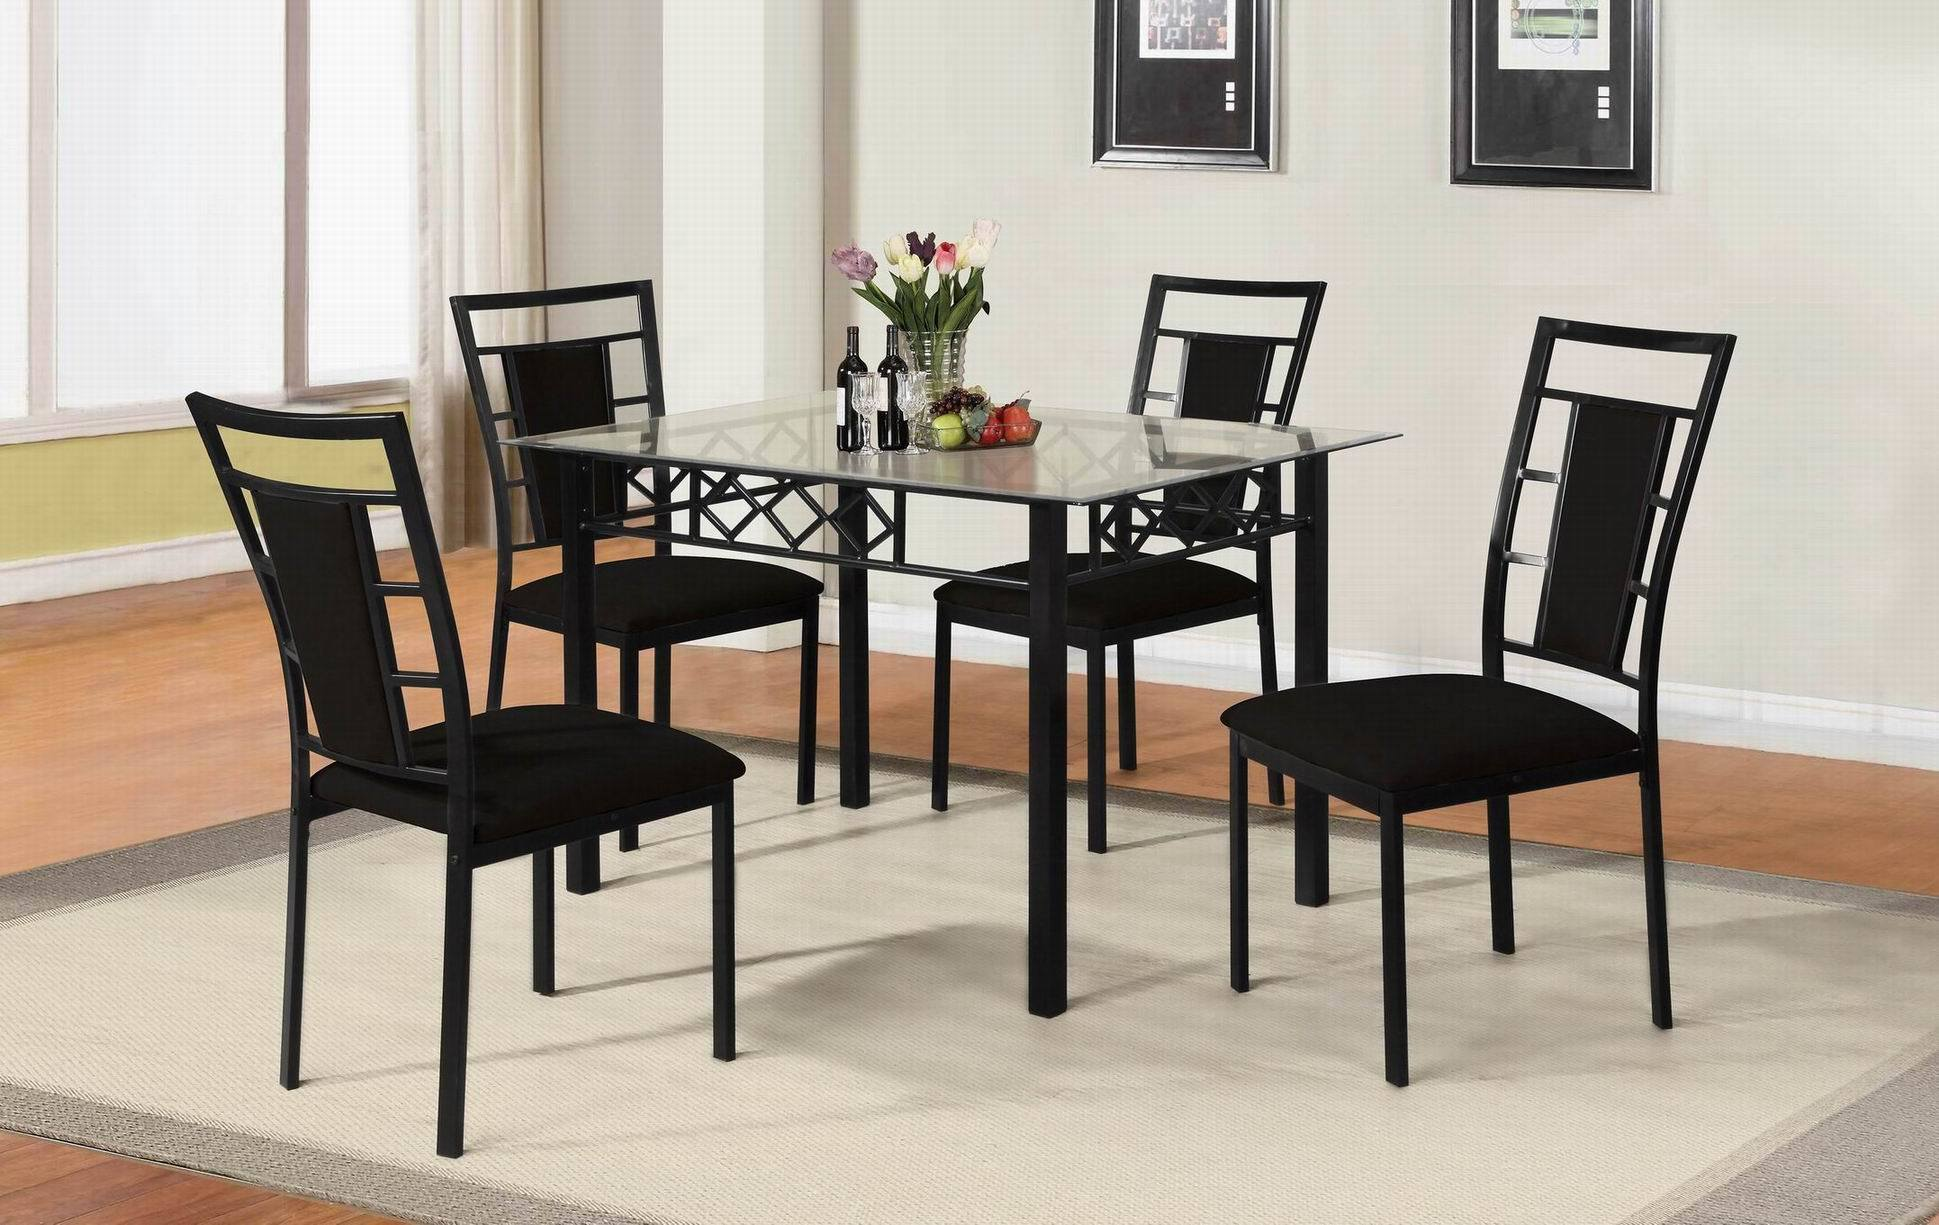 Metal Furniture Dining Set with Glass Top